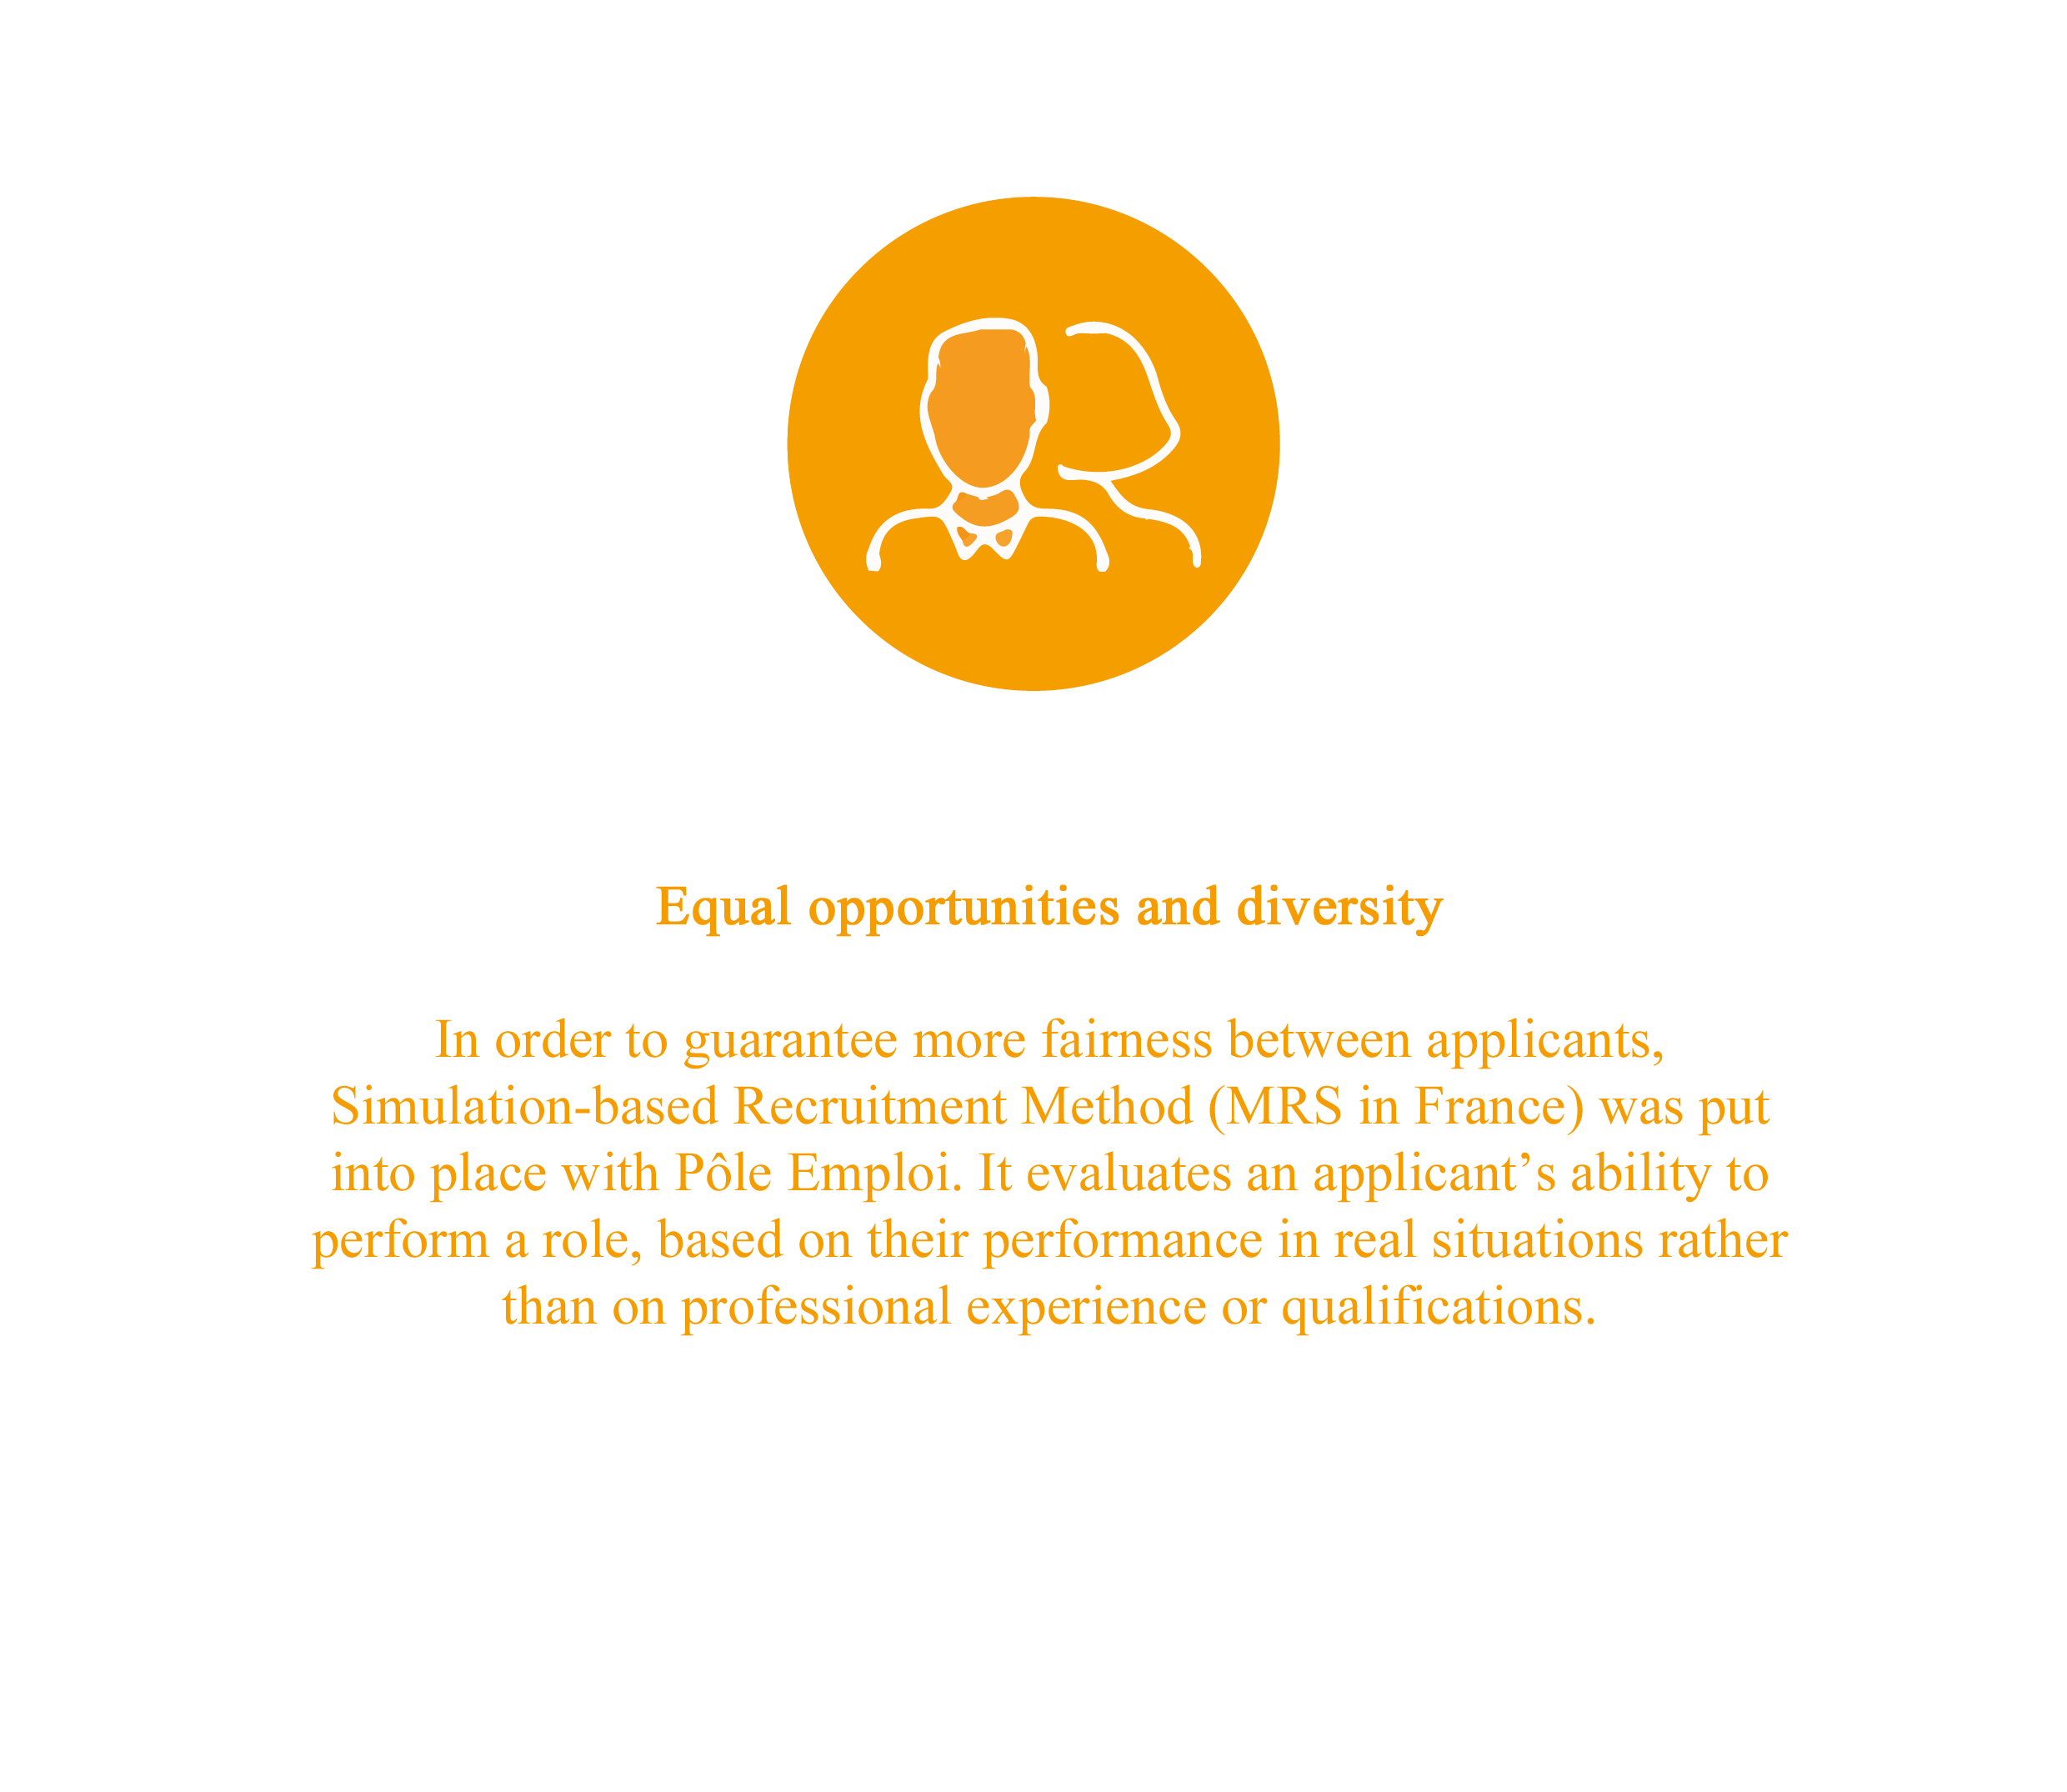 are equal opportunities diversity management Definition of diversity management according to military leadership and diversity commission was signed into order by the president of the united states in order to promote the federal workplace as a model of equal opportunity, diversity, and inclusion.